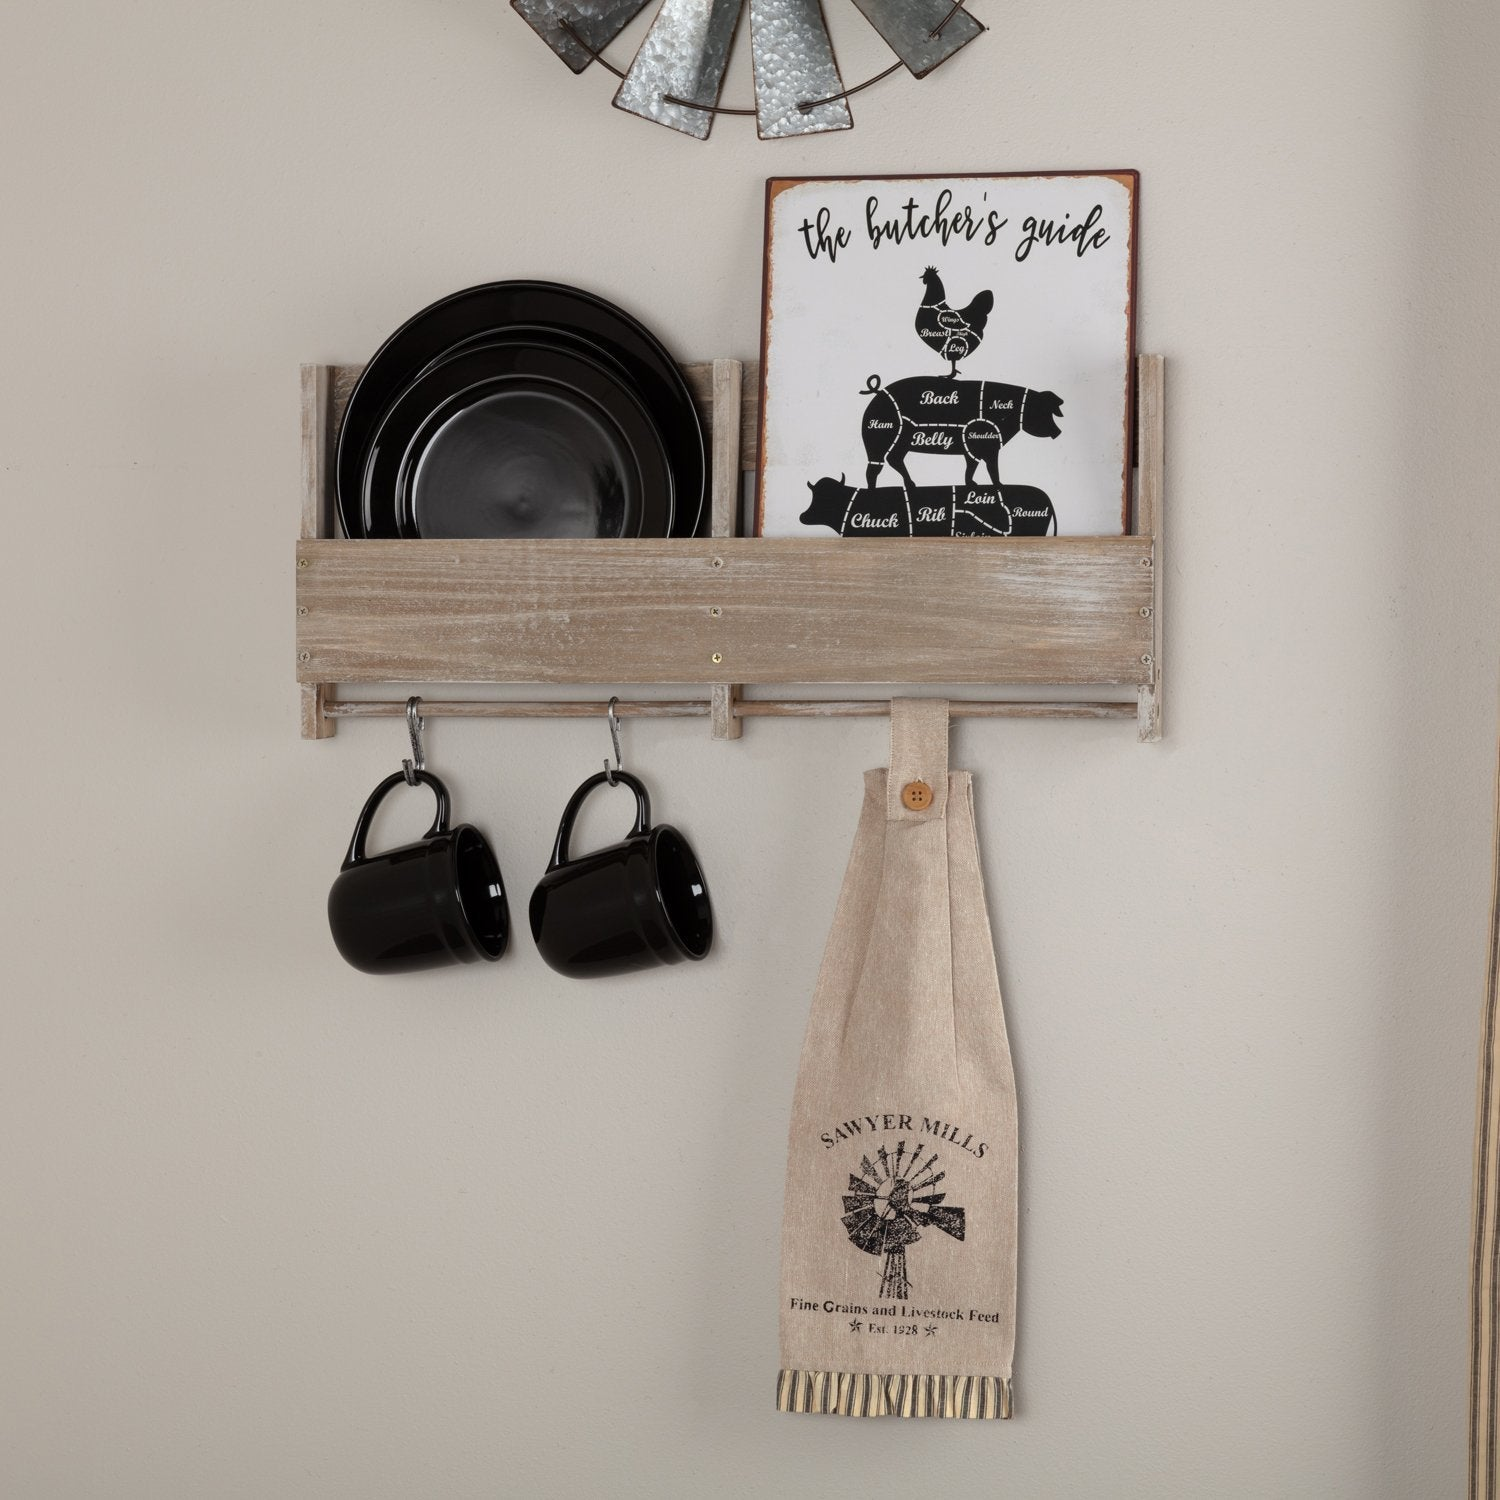 Sawyer Mill Charcoal Windmill Button Loop Kitchen Towel Set of 2.